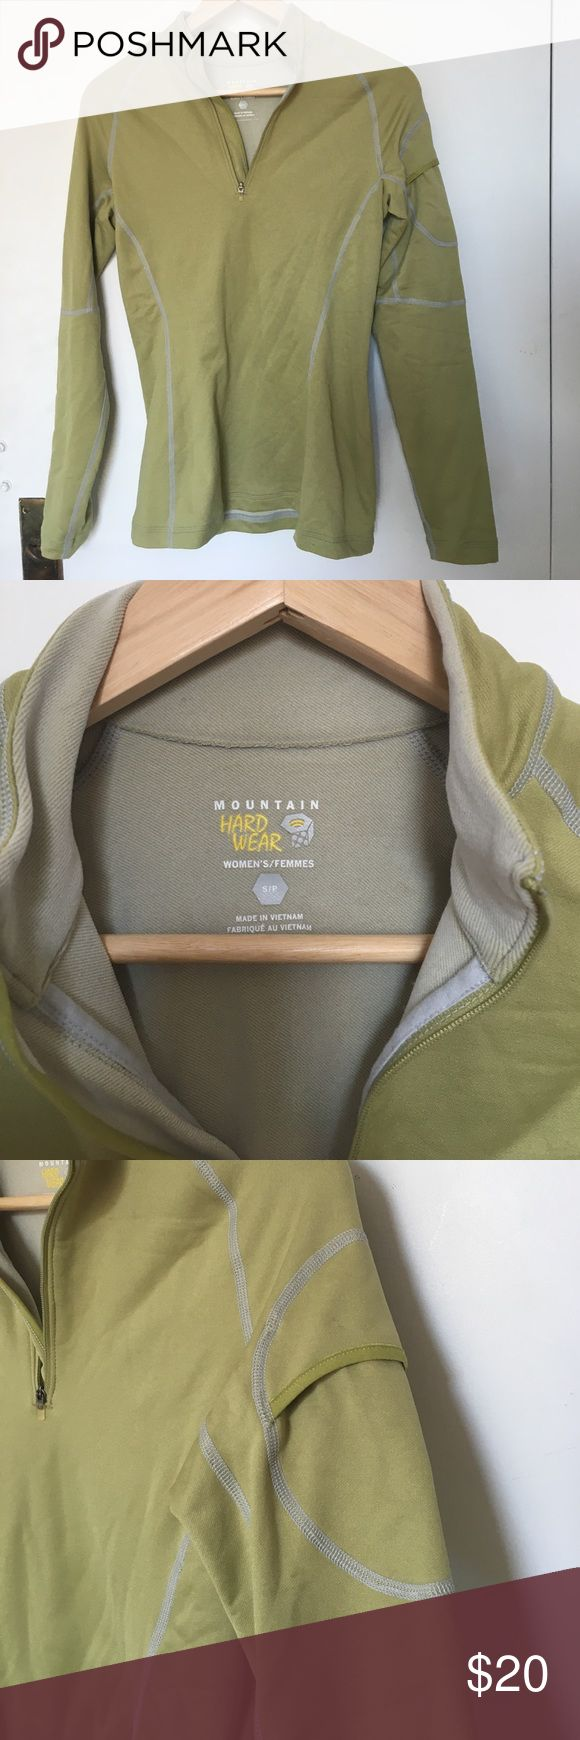 Mountain Hard Ware Stretchy Pullover Light moss green pullover from Mountain Hard Ware. 1/4 front zip and external pocket on upper left arm that's convenient for storing your phone while exercising or hiking. Fitted but stretchy fabric, nylon/polyester blend. Size: S. Mountain Hard Wear Tops